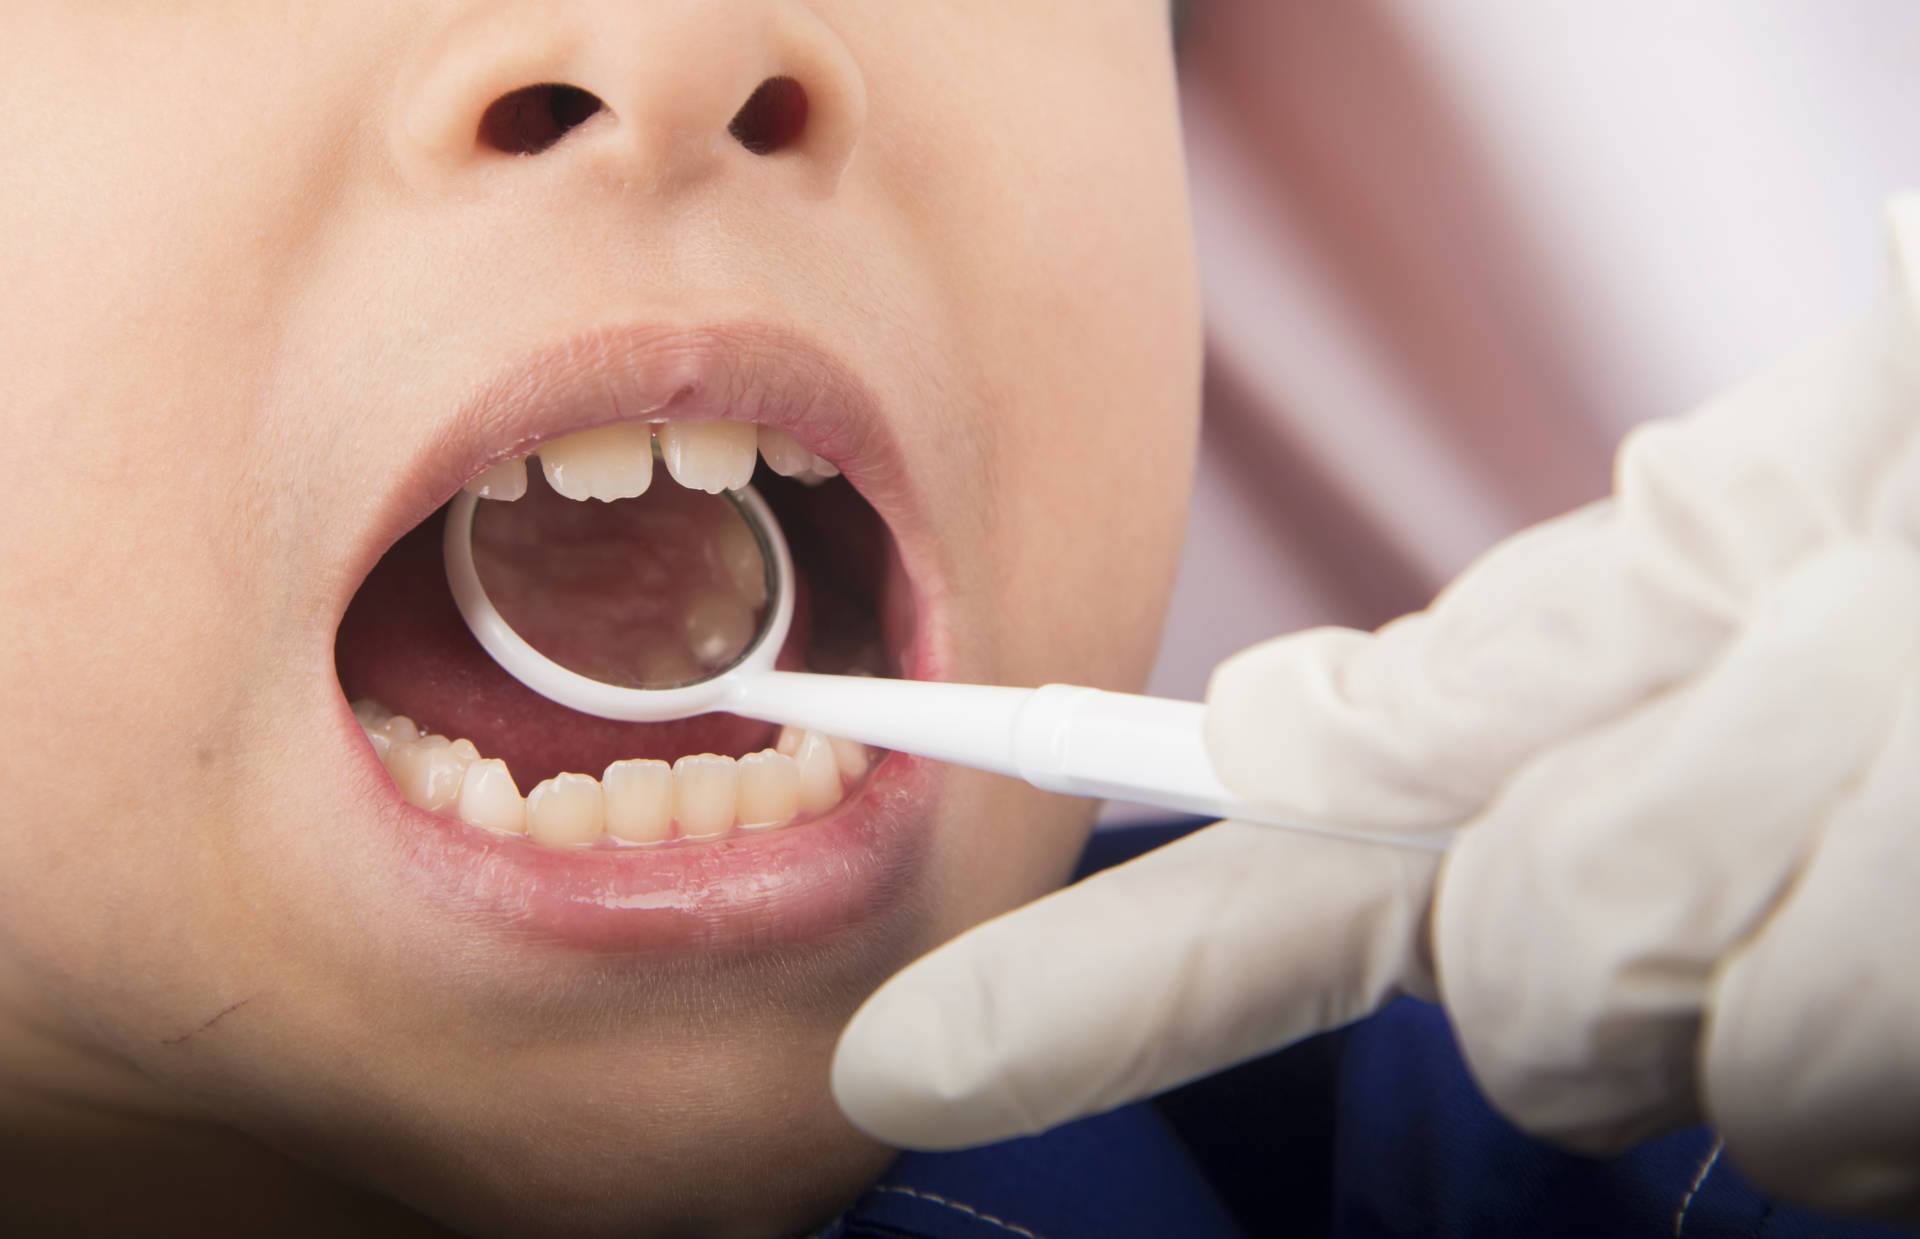 Dentists Reopen With Changes To Protect Workers, Patients | KQED